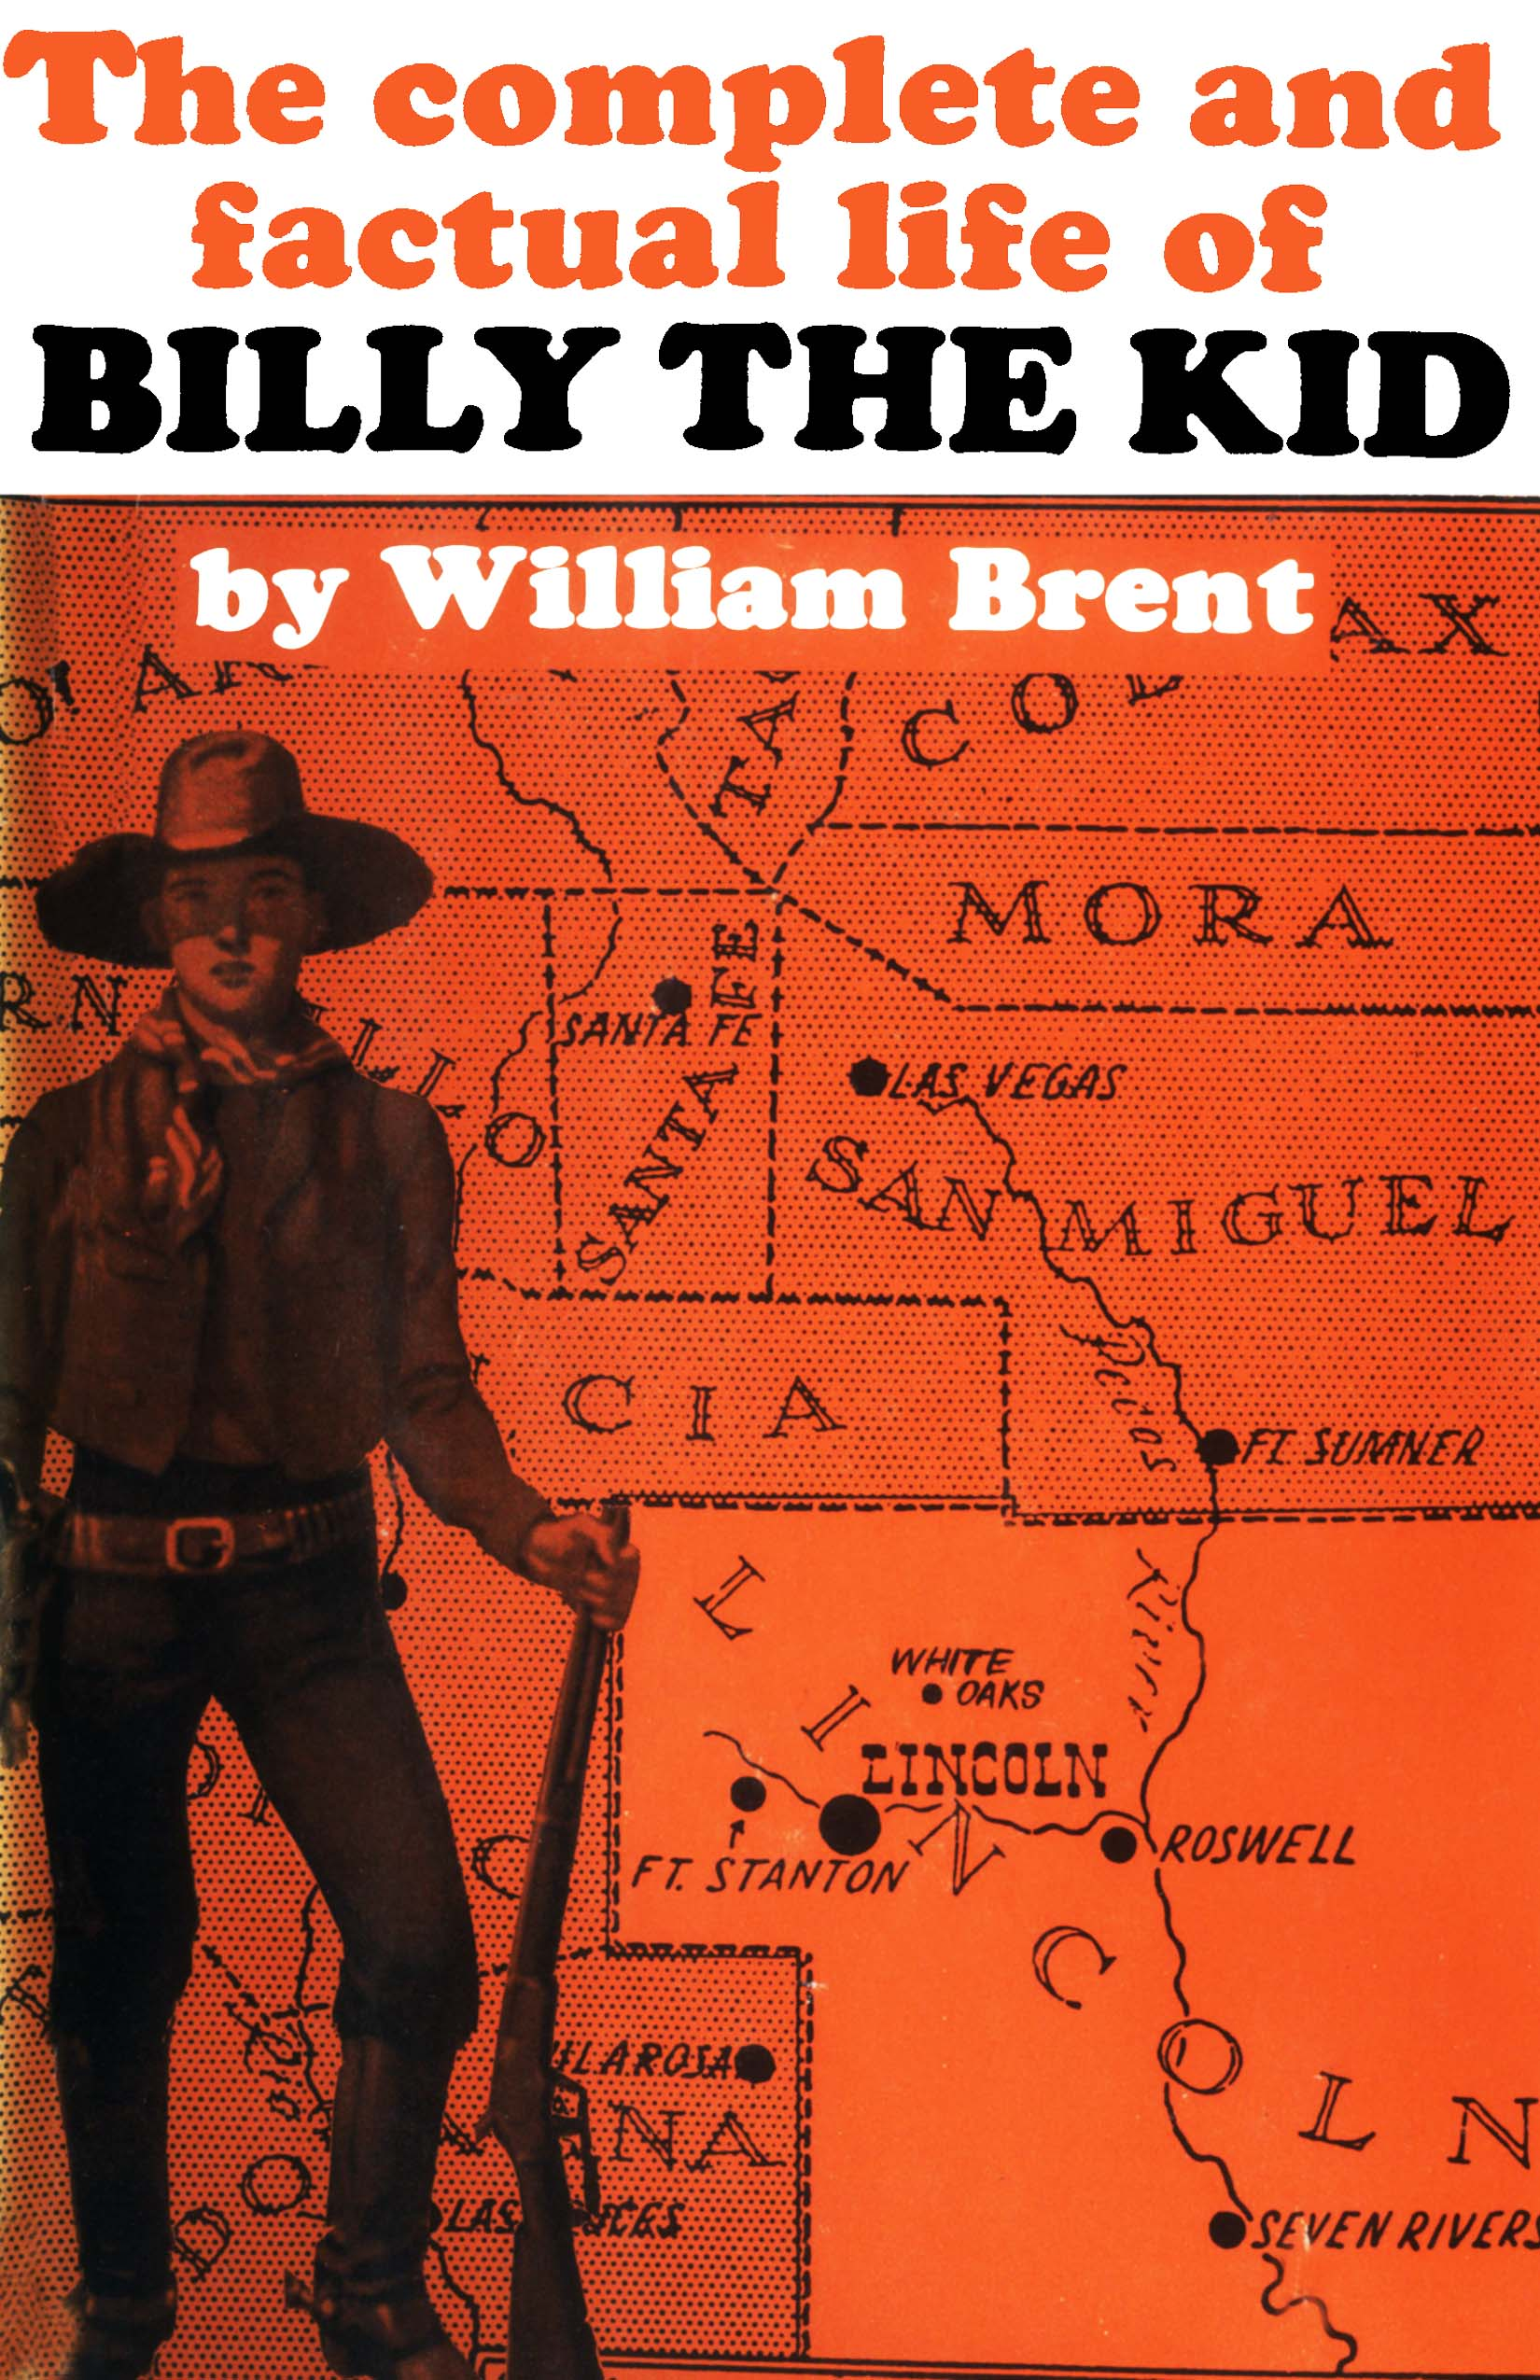 The Complete and Factual life of Billy the Kid